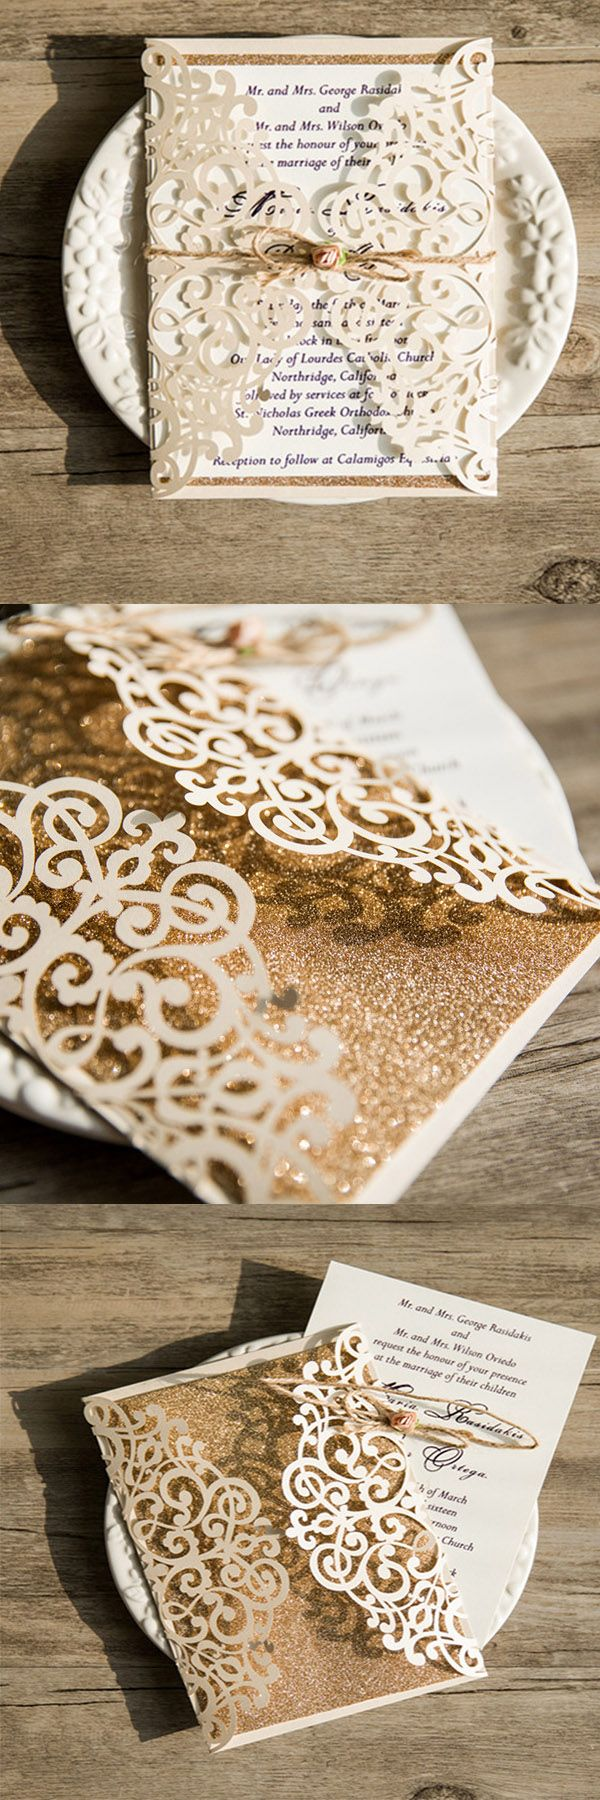 Glitter is still a hot commodity when it comes to vintage wedding, unique laser cut design with ivory color, choose this gold glitter wedding invitations if you want to wow your guests!#weddinginvitations#ElegantWeddingInvites